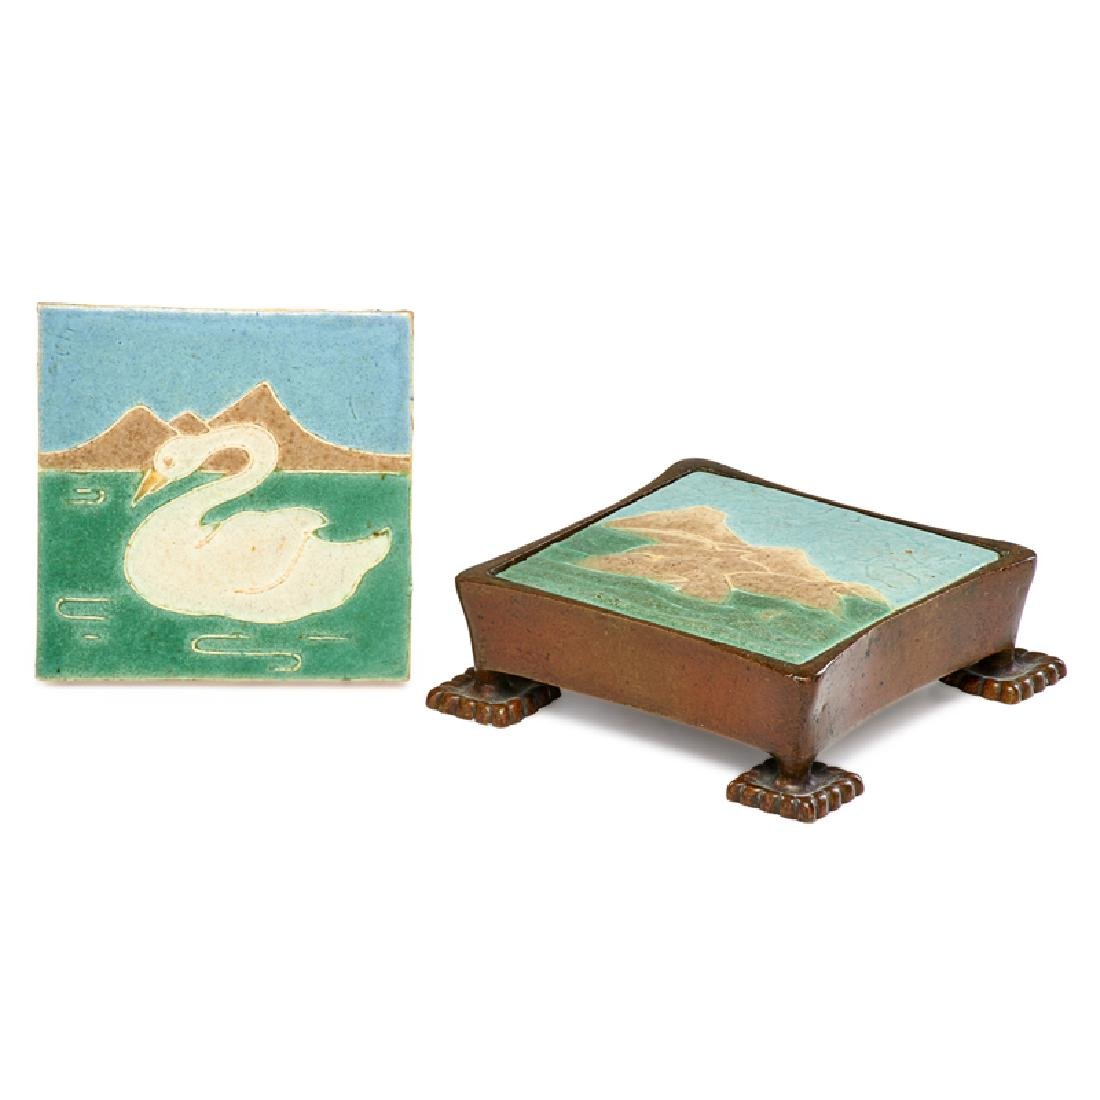 GRUEBY; TIFFANY STUDIOS Two tiles, frame